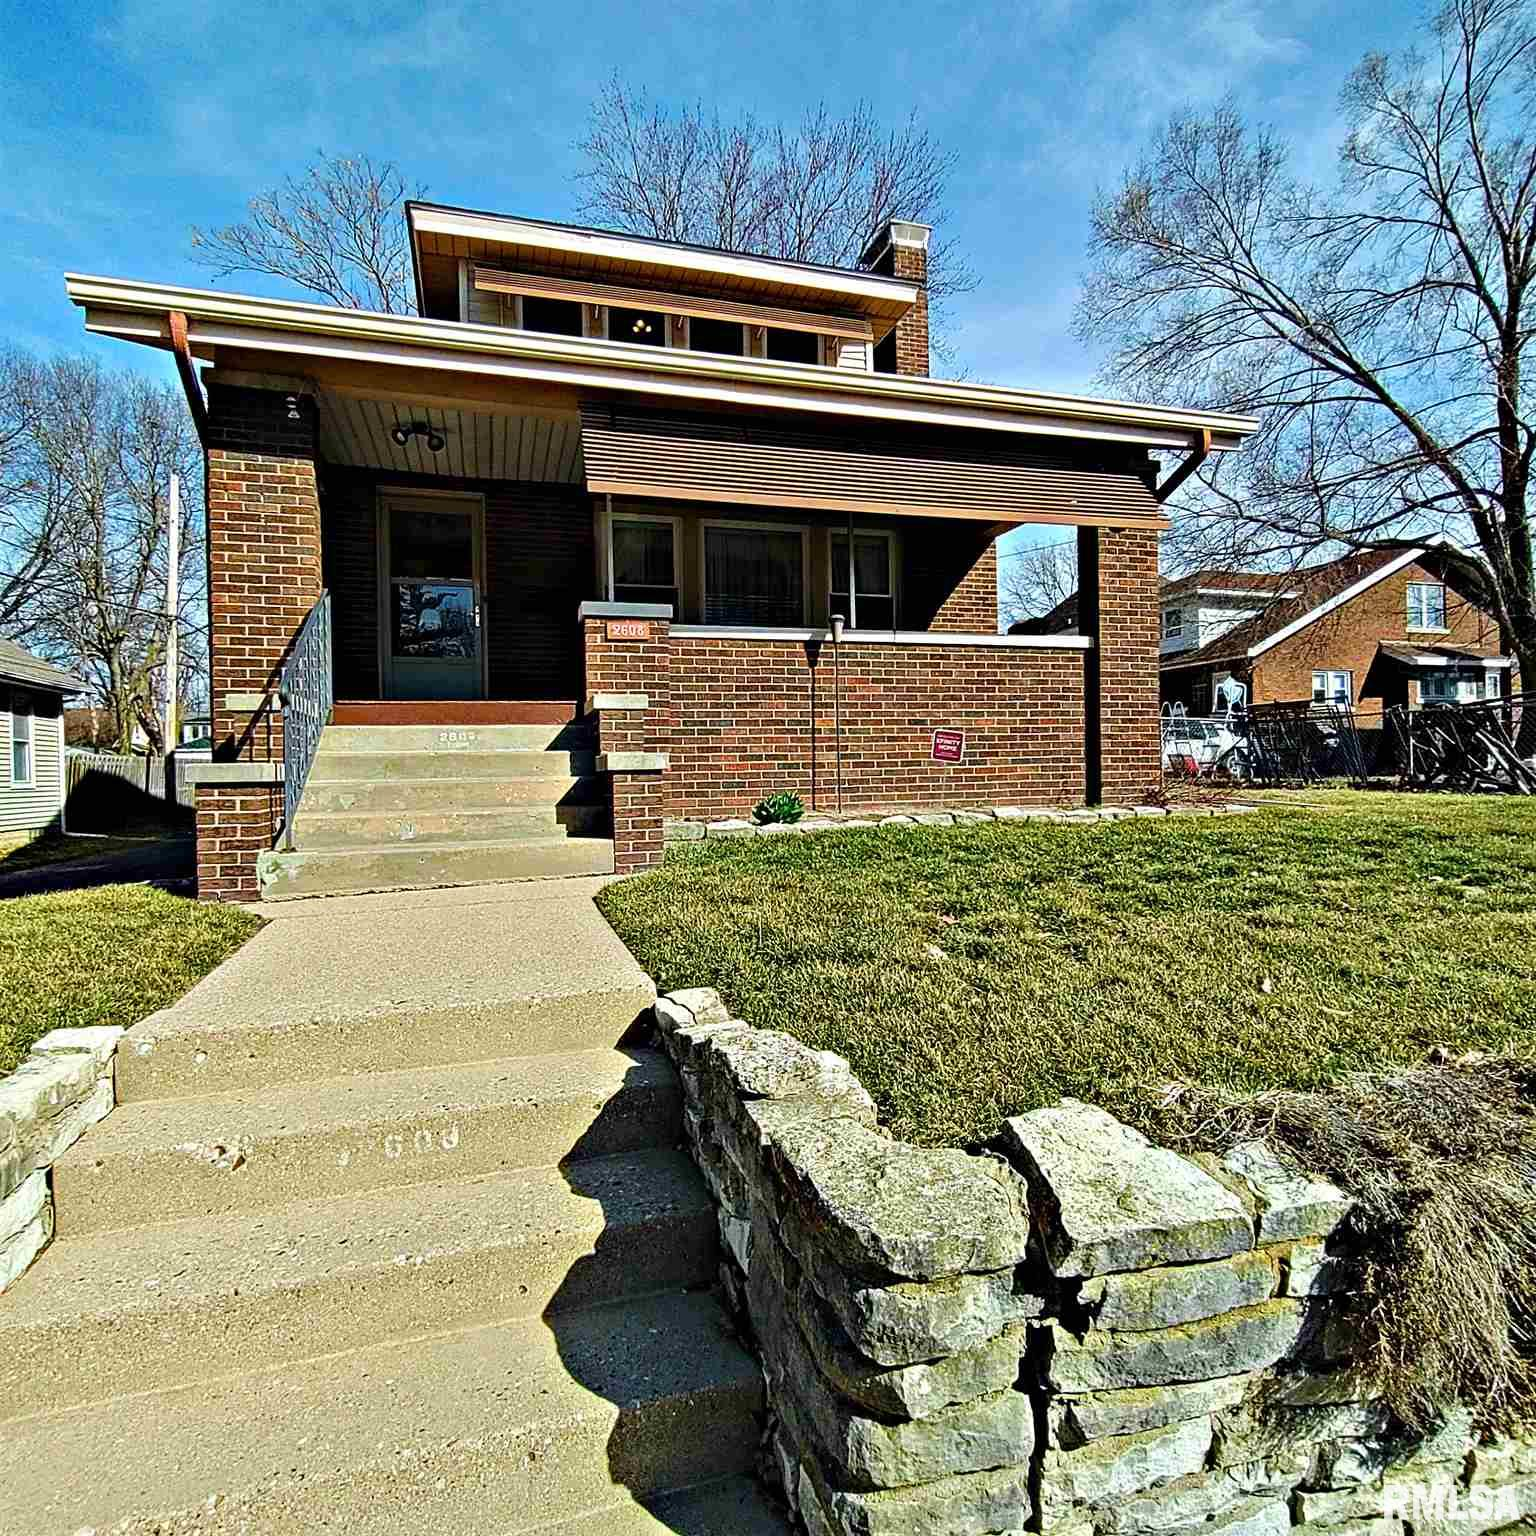 2608 N BIGELOW Property Photo - Peoria, IL real estate listing